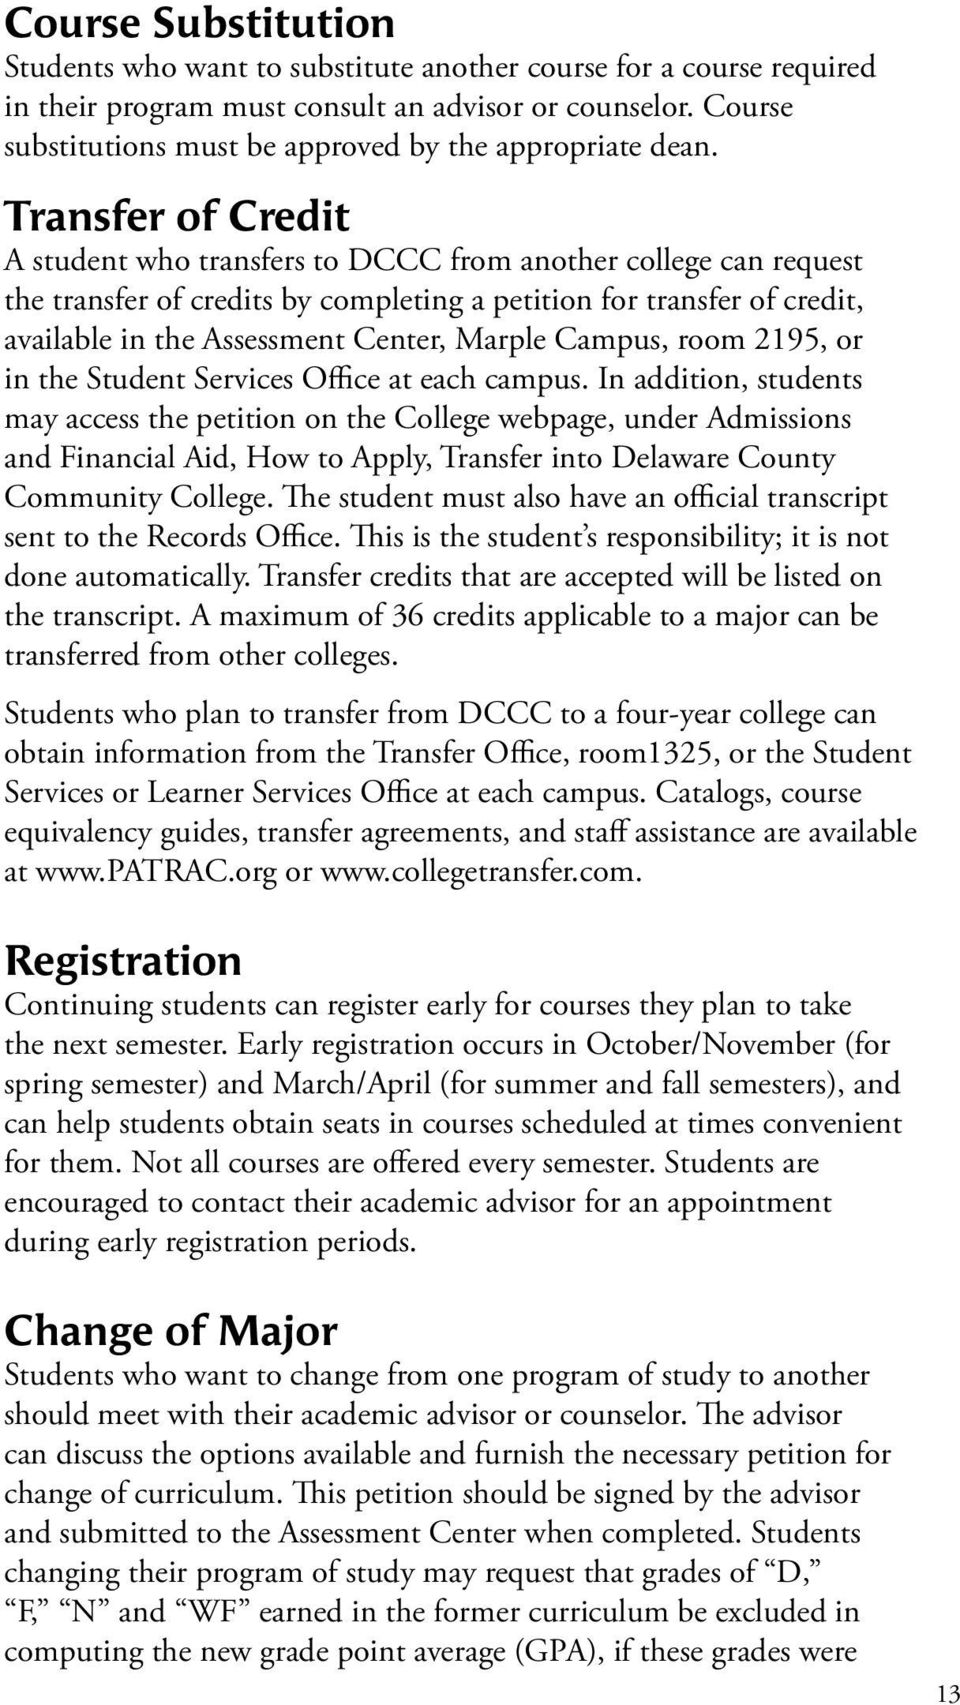 Transfer of Credit A student who transfers to DCCC from another college can request the transfer of credits by completing a petition for transfer of credit, available in the Assessment Center, Marple